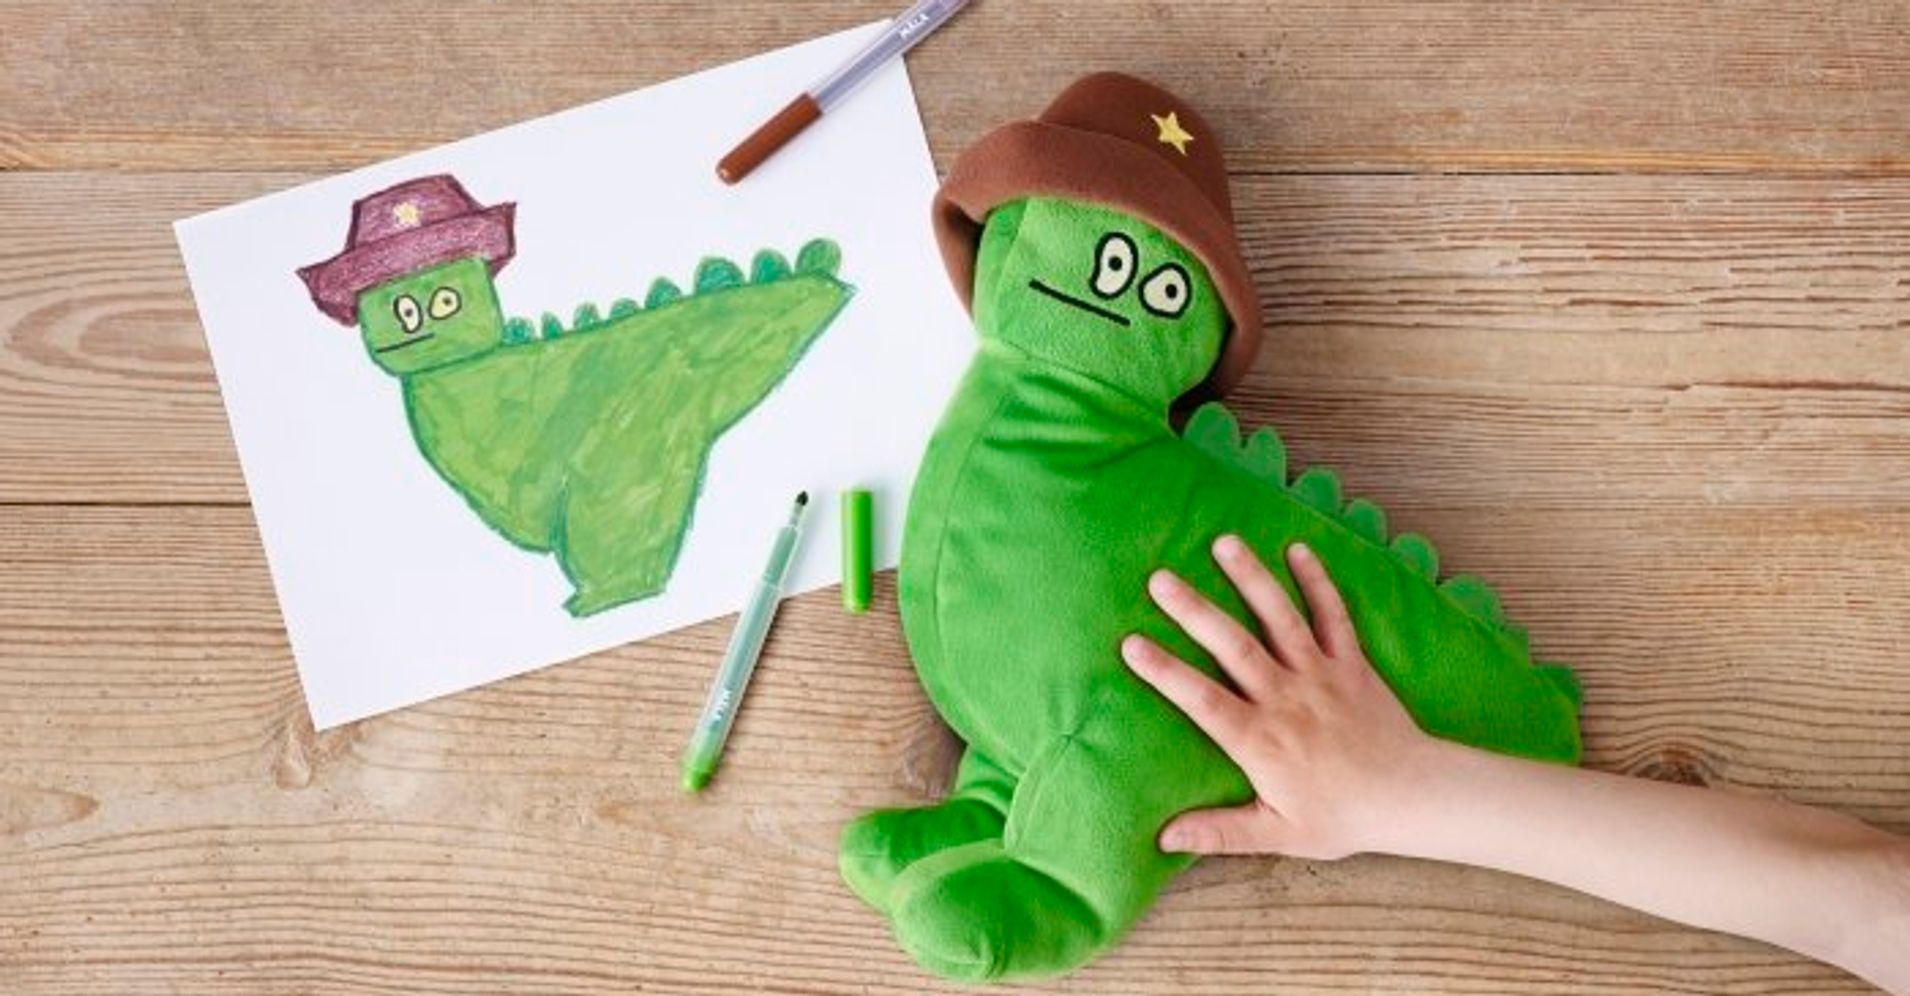 ikea transforms kids 39 drawings into cuddly toys that raise money for charity huffpost. Black Bedroom Furniture Sets. Home Design Ideas